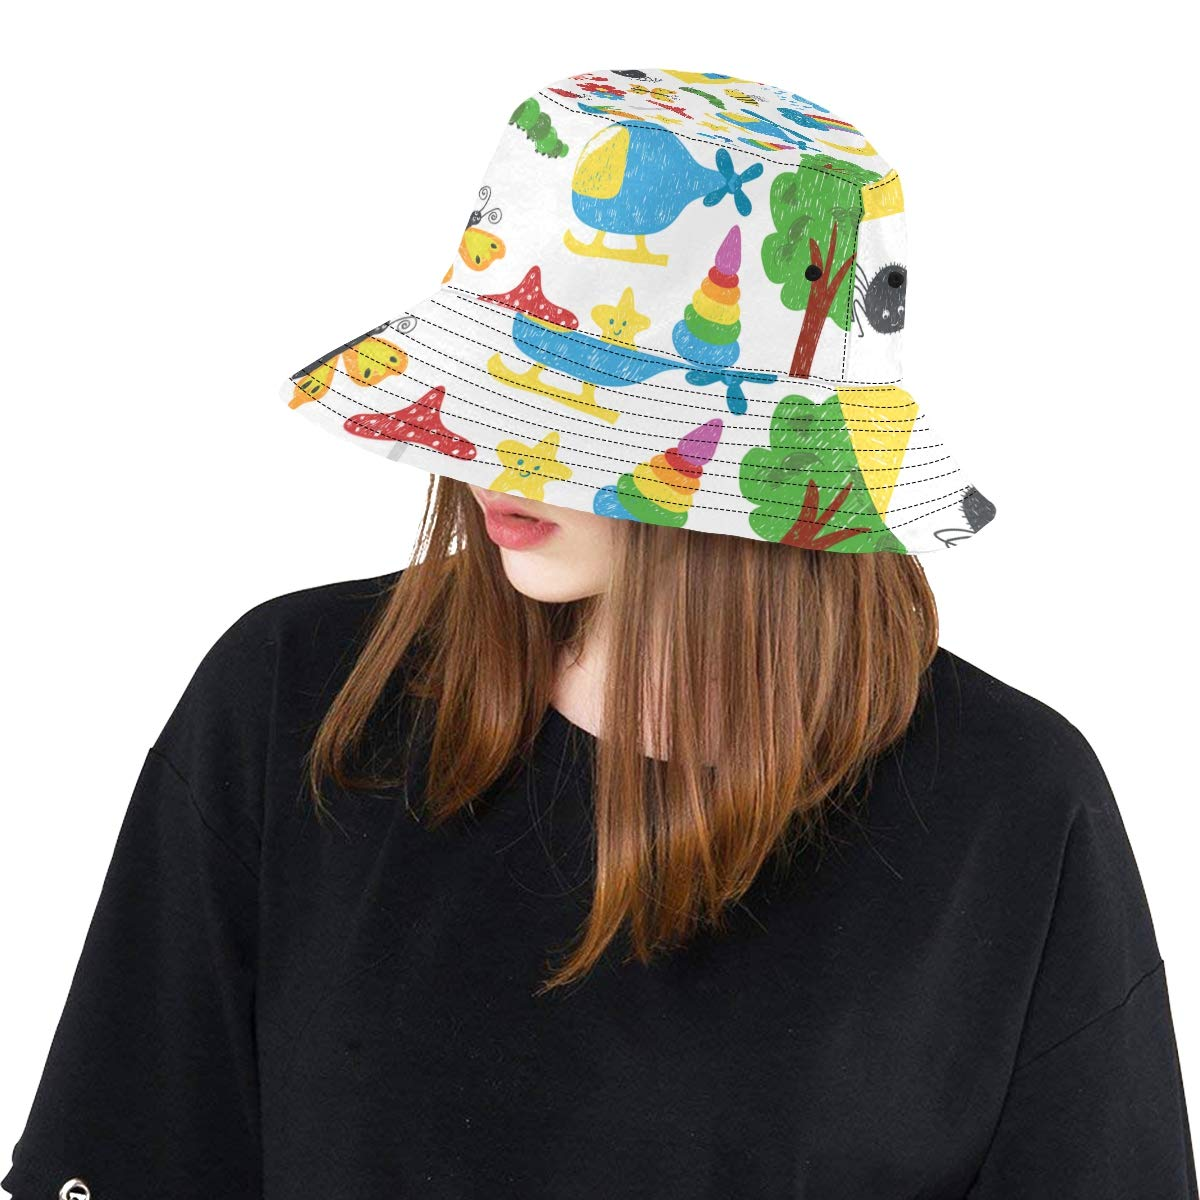 Colored Kid Drawing Children Love Painting New Summer Unisex Cotton Fashion Fishing Sun Bucket Hats for Kid Teens Women and Men with Customize Top Packable Fisherman Cap for Outdoor Travel